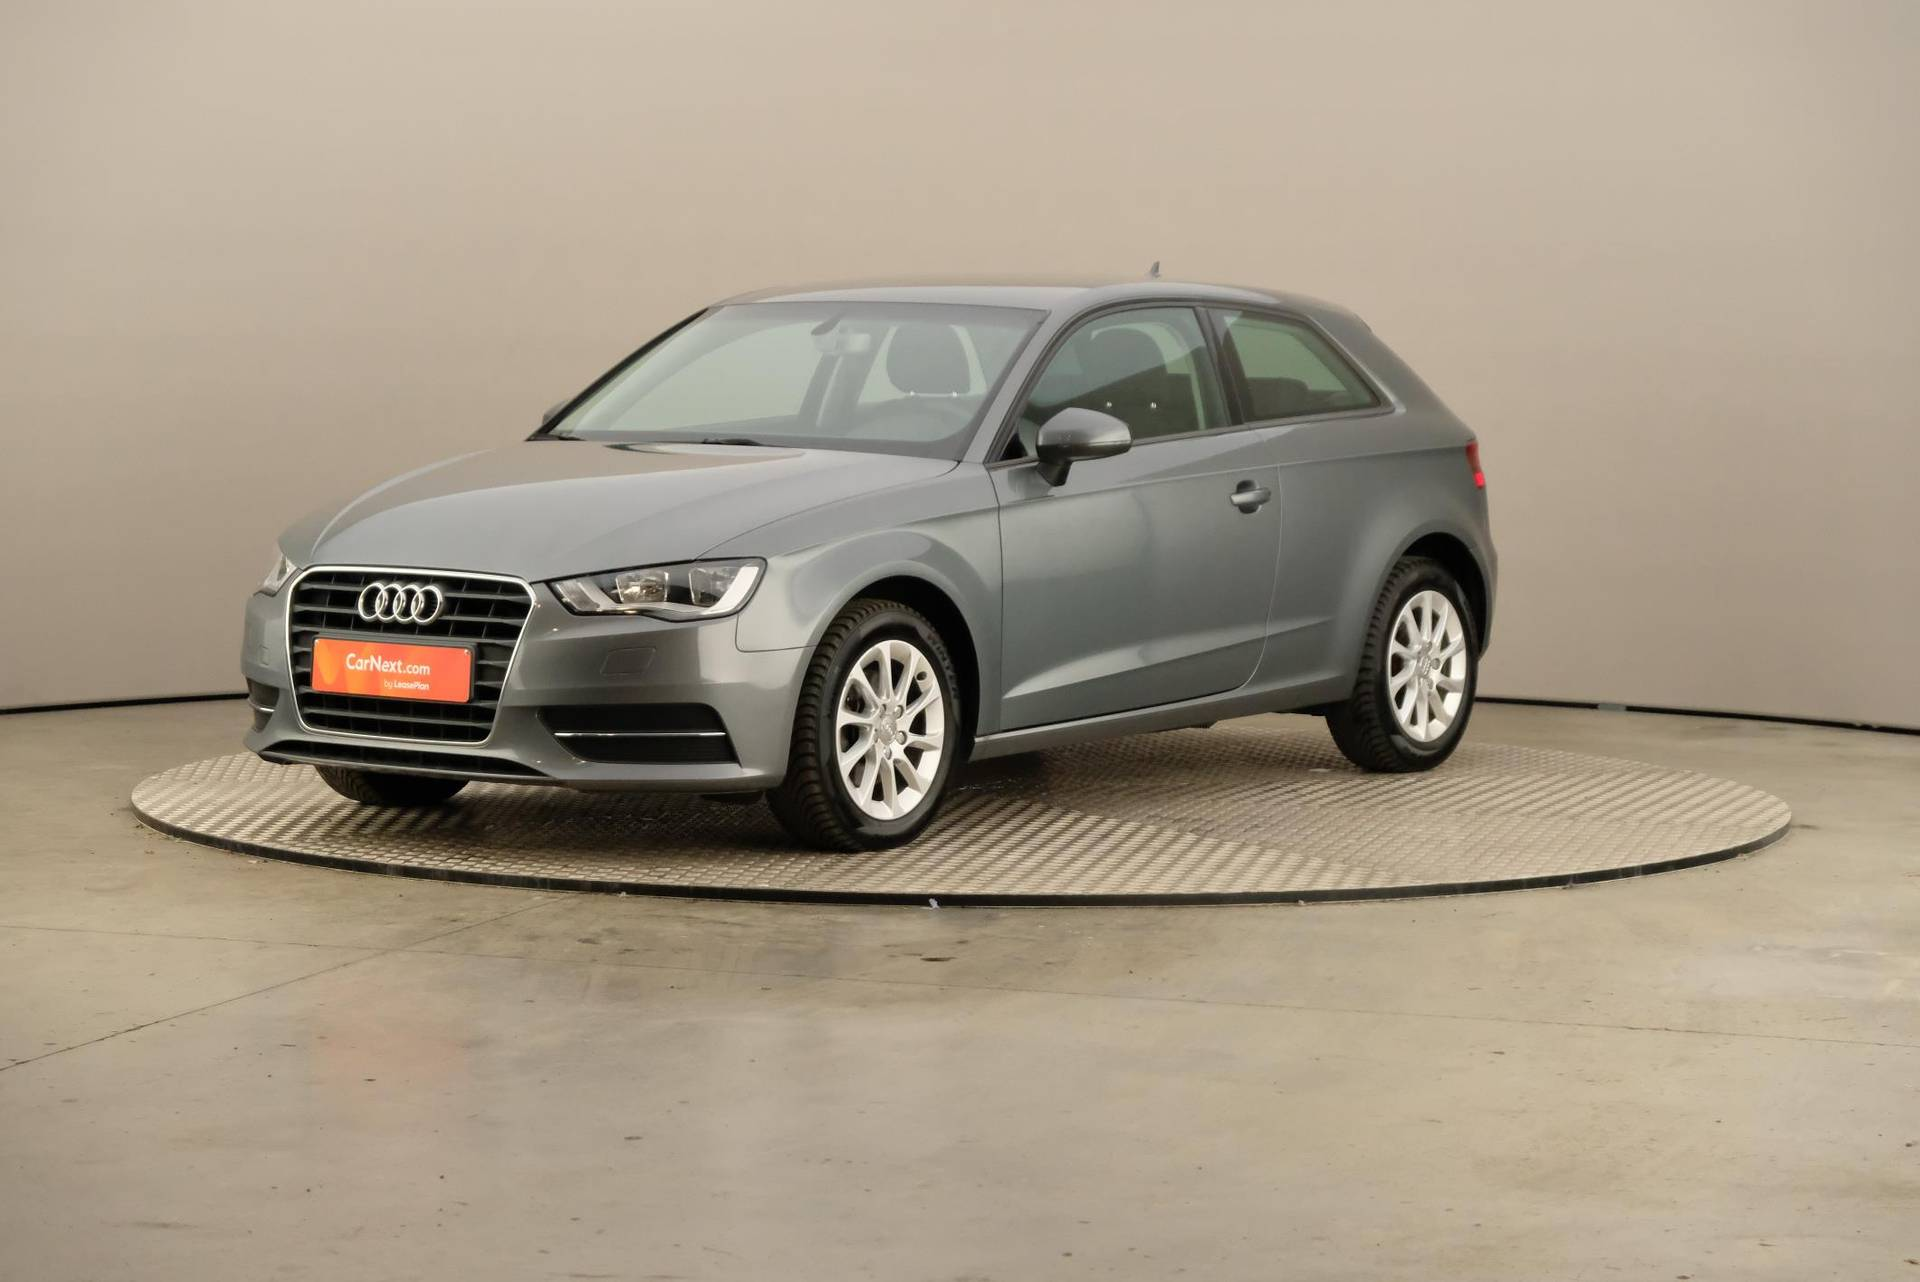 Audi A3 1.6 TDi ULTRA Attraction GPS PDC BLUETOOTH, 360-image34